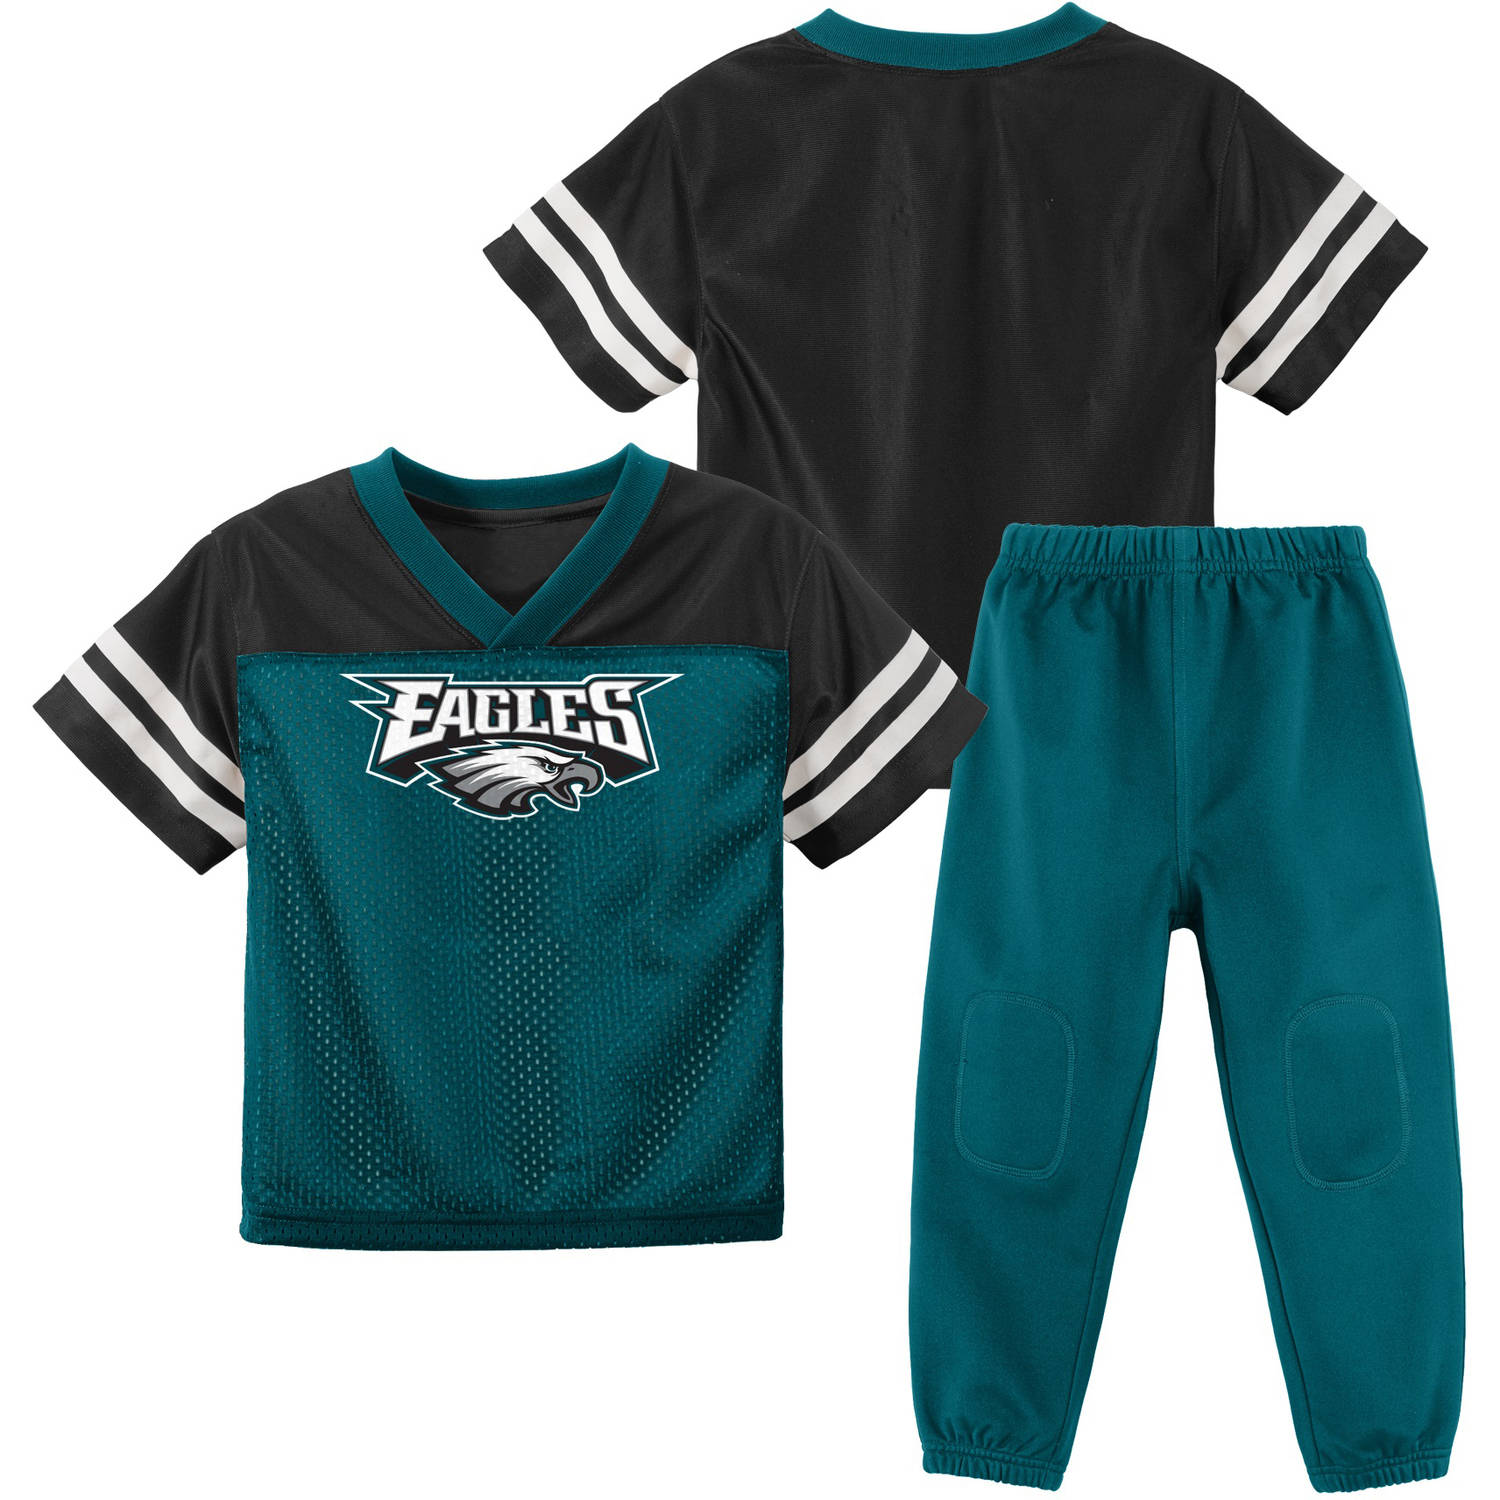 NFL Philadelphia Eagles Toddler Short Sleeve Top and Pant Set